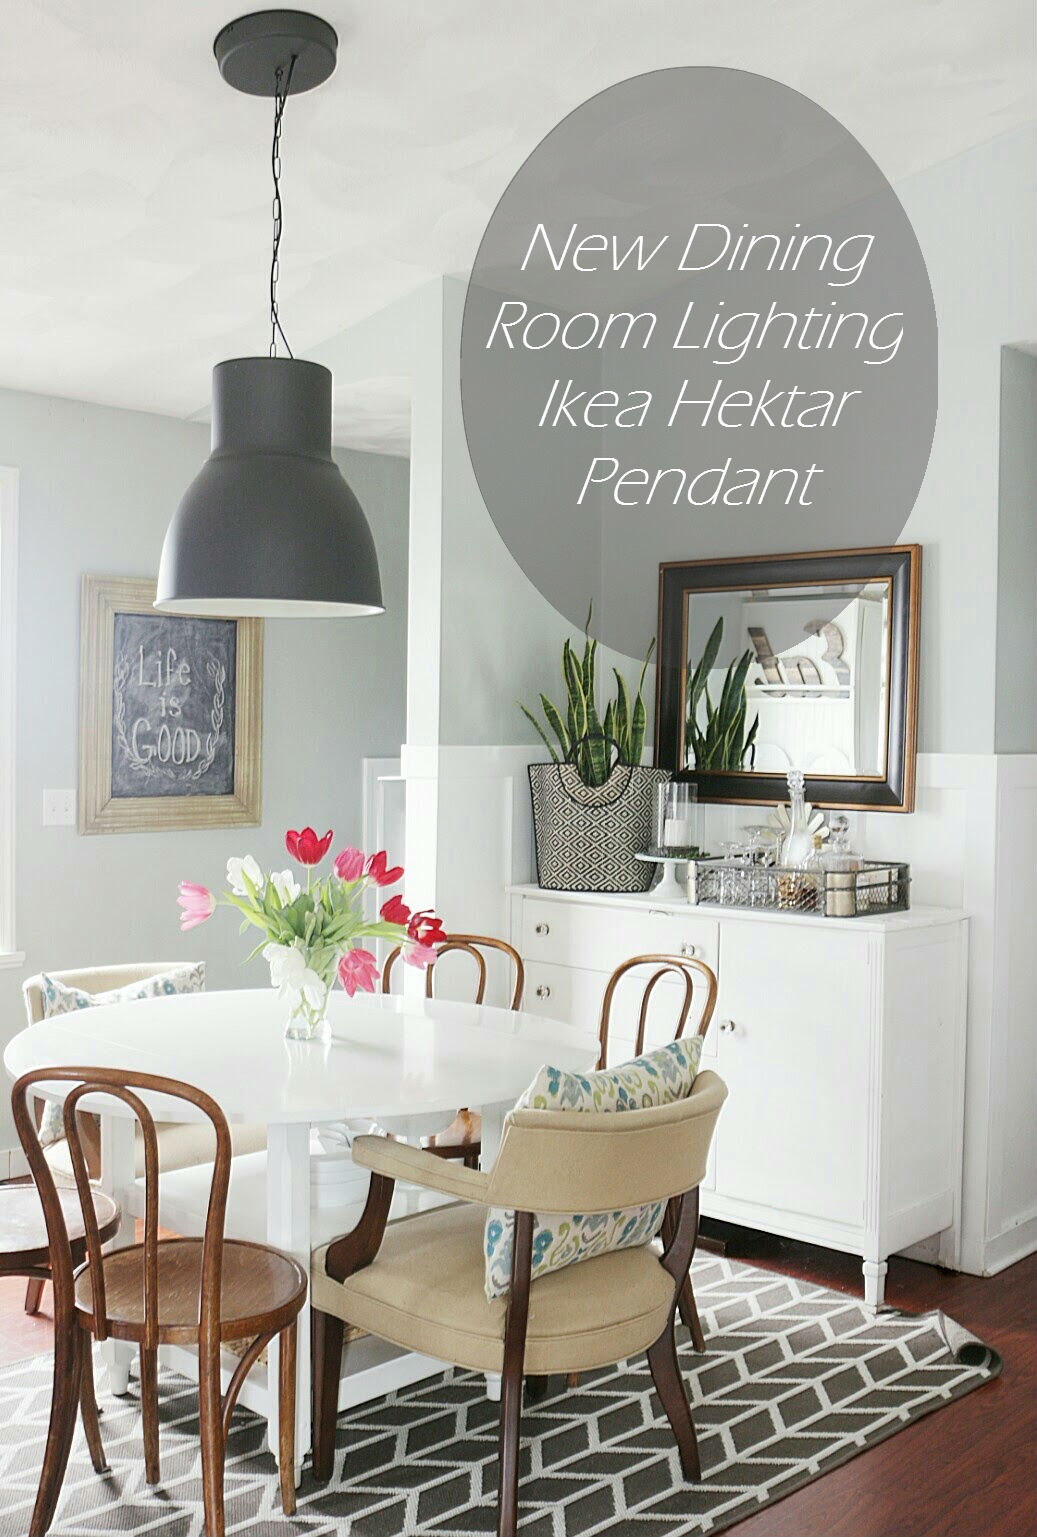 New dining room lighting ikea hektar pendant made by carli new dining room lighting ikea hektar pendant aloadofball Images